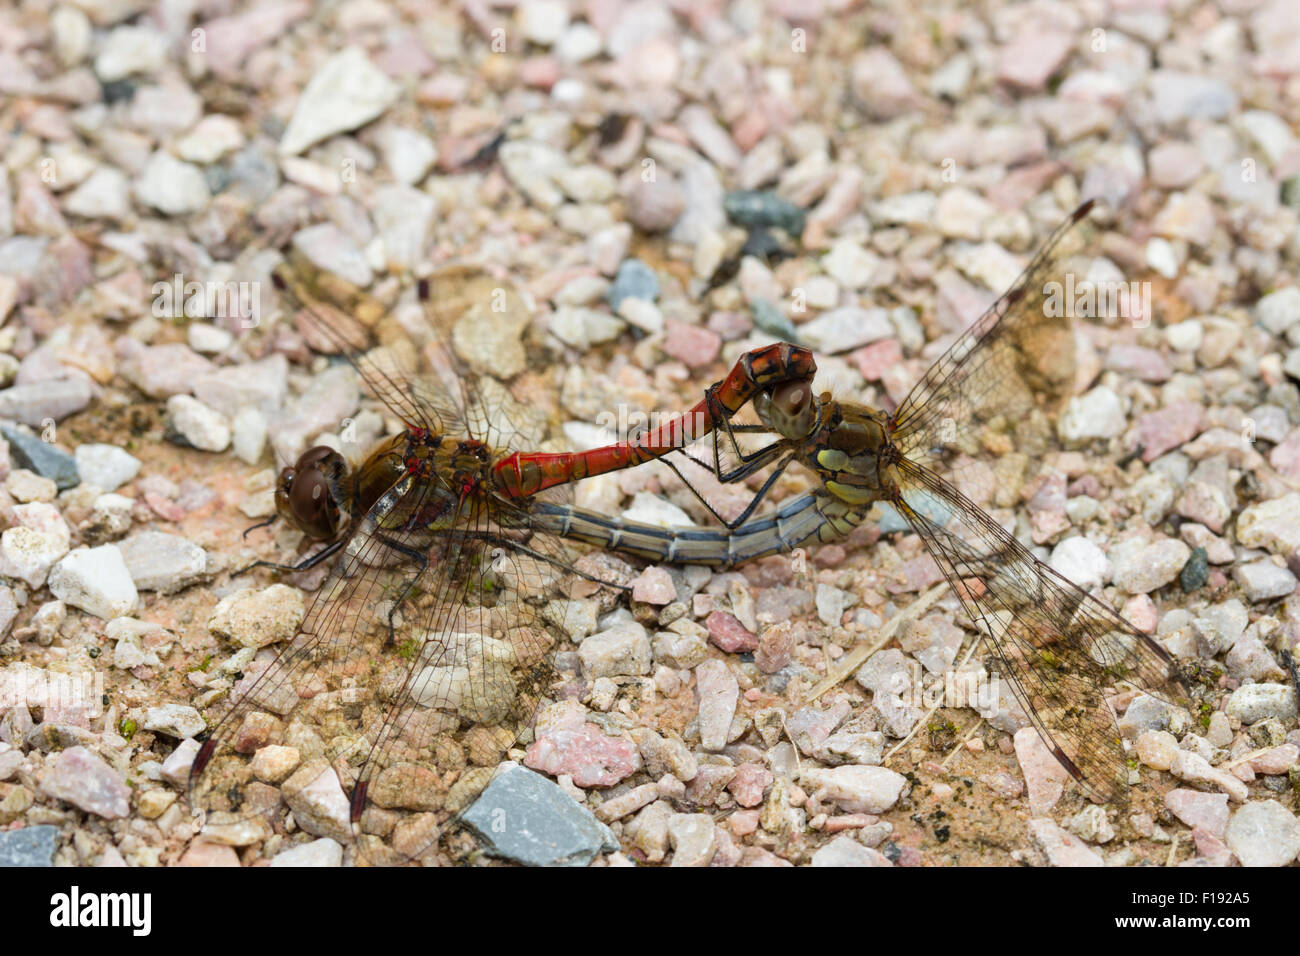 red-male-and-blue-green-female-common-darters-sympetrum-striolatum-F192A5.jpg